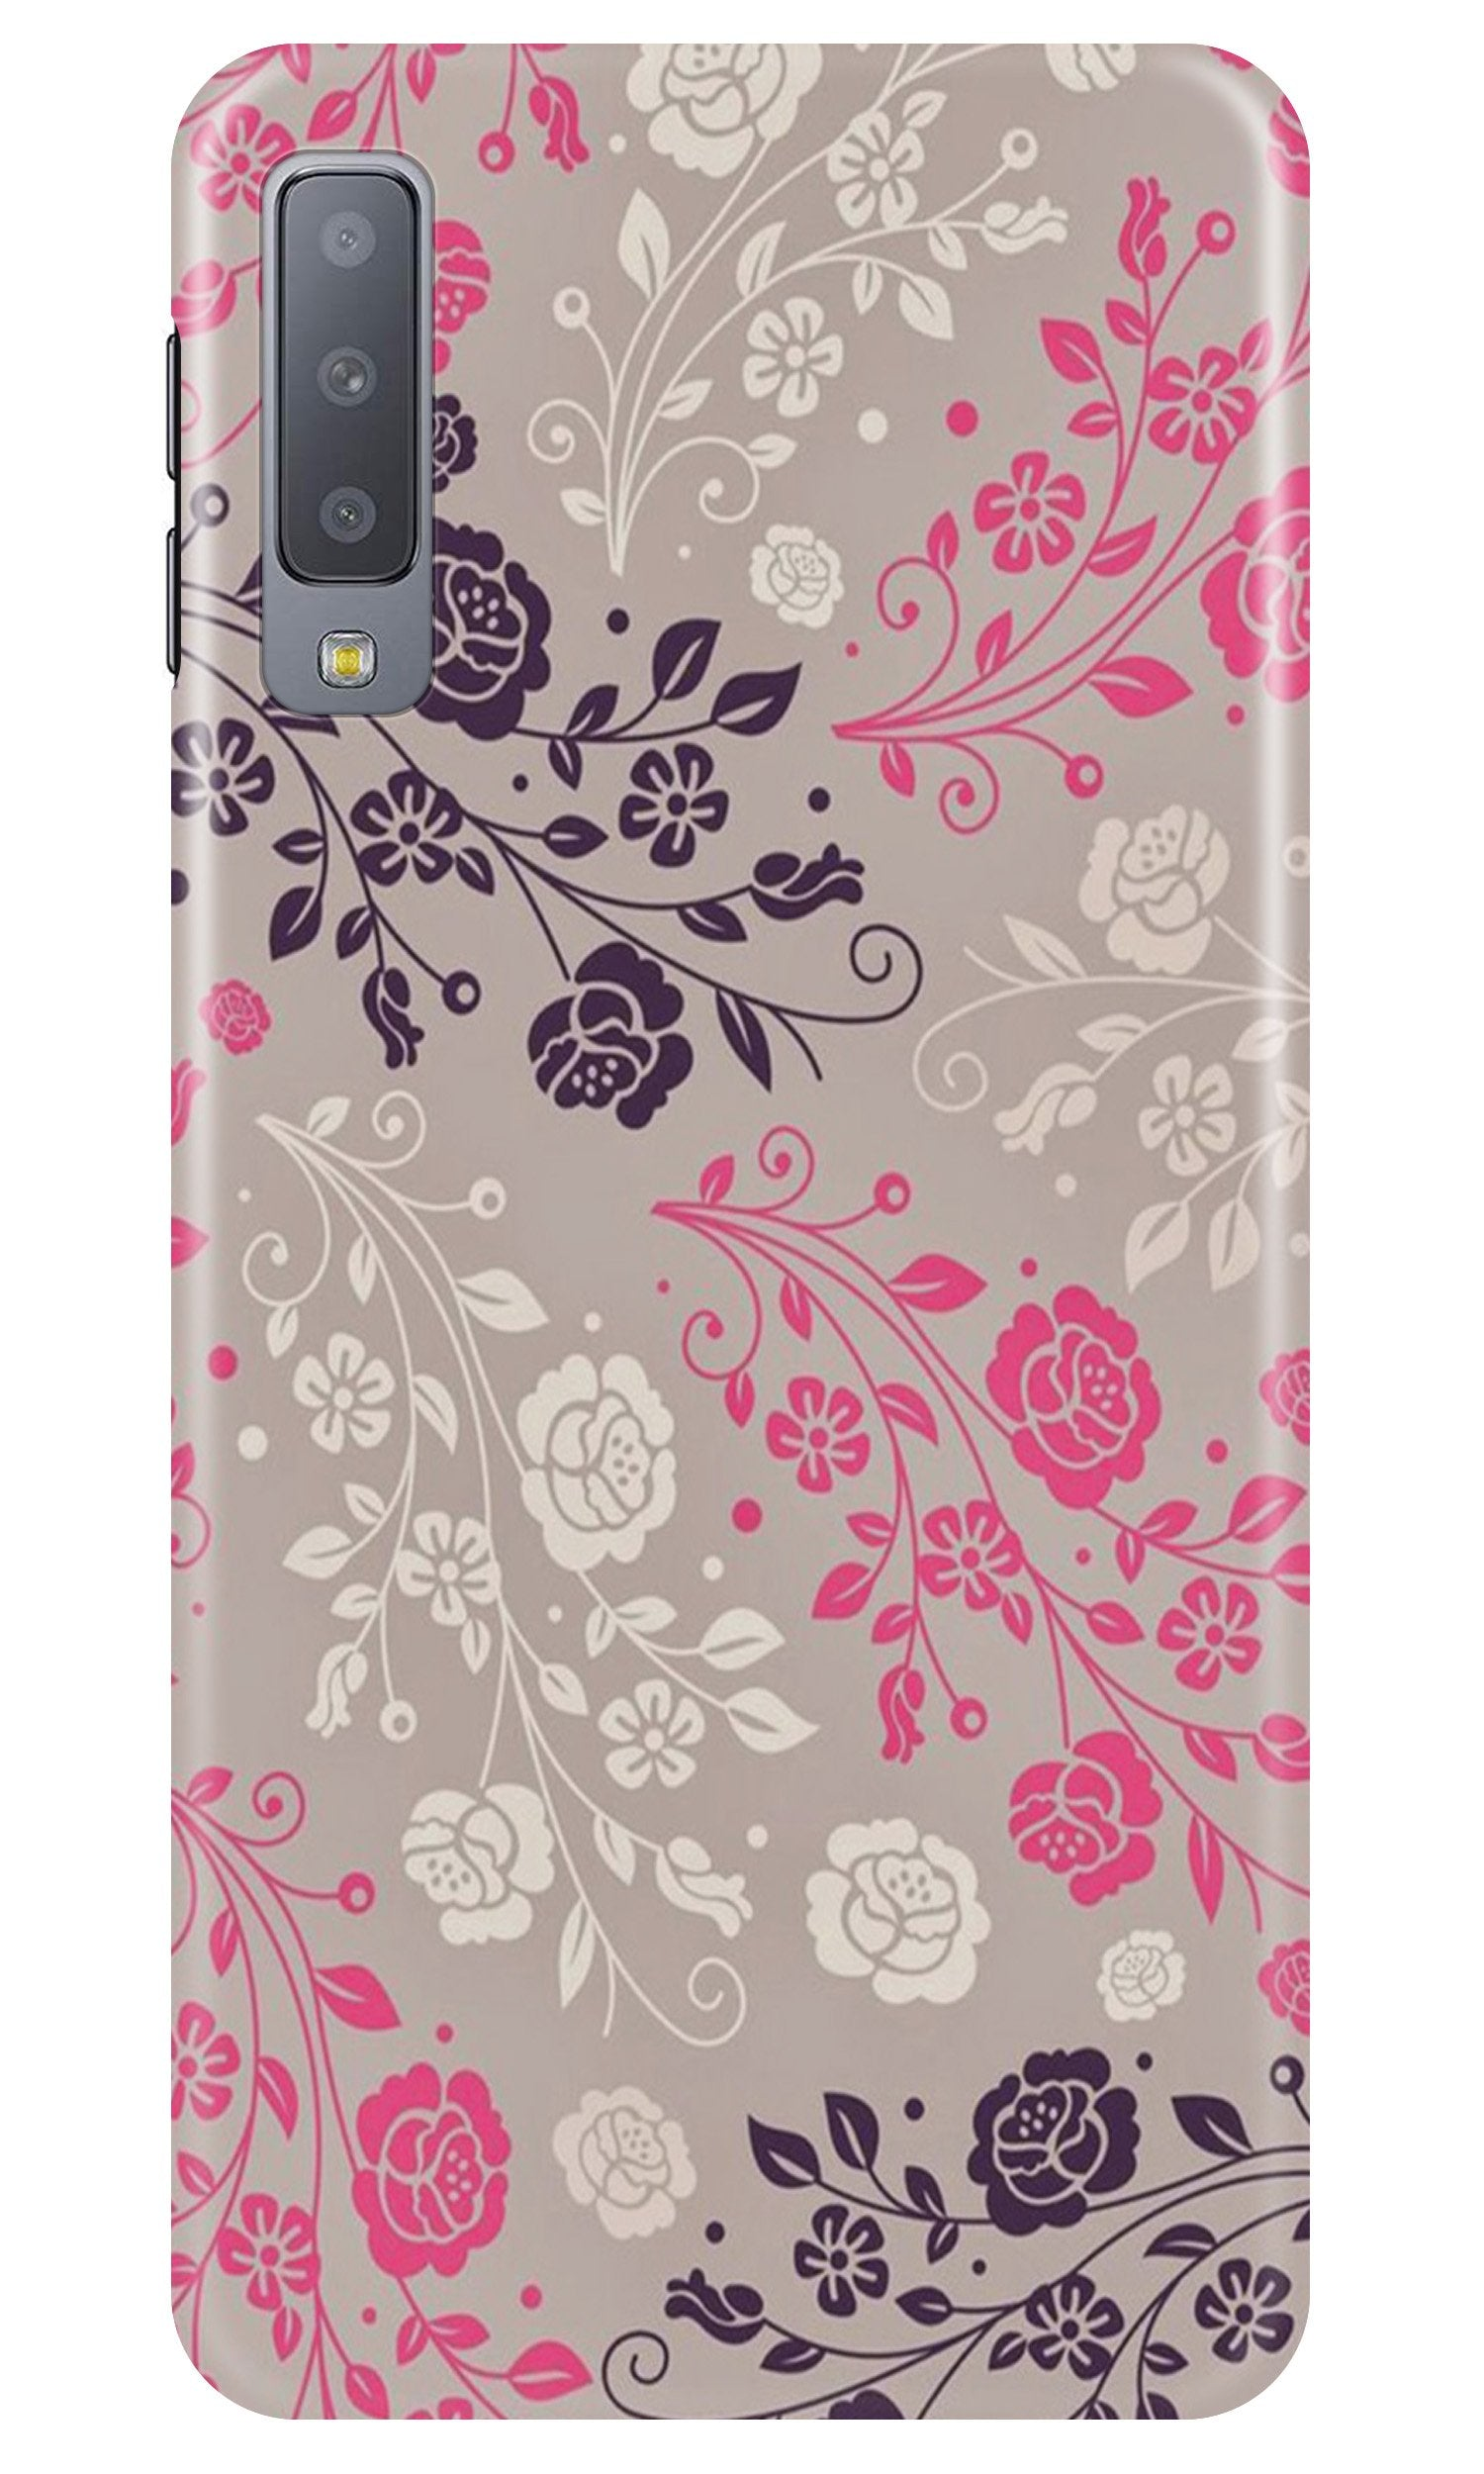 Pattern2 Case for Samsung A50